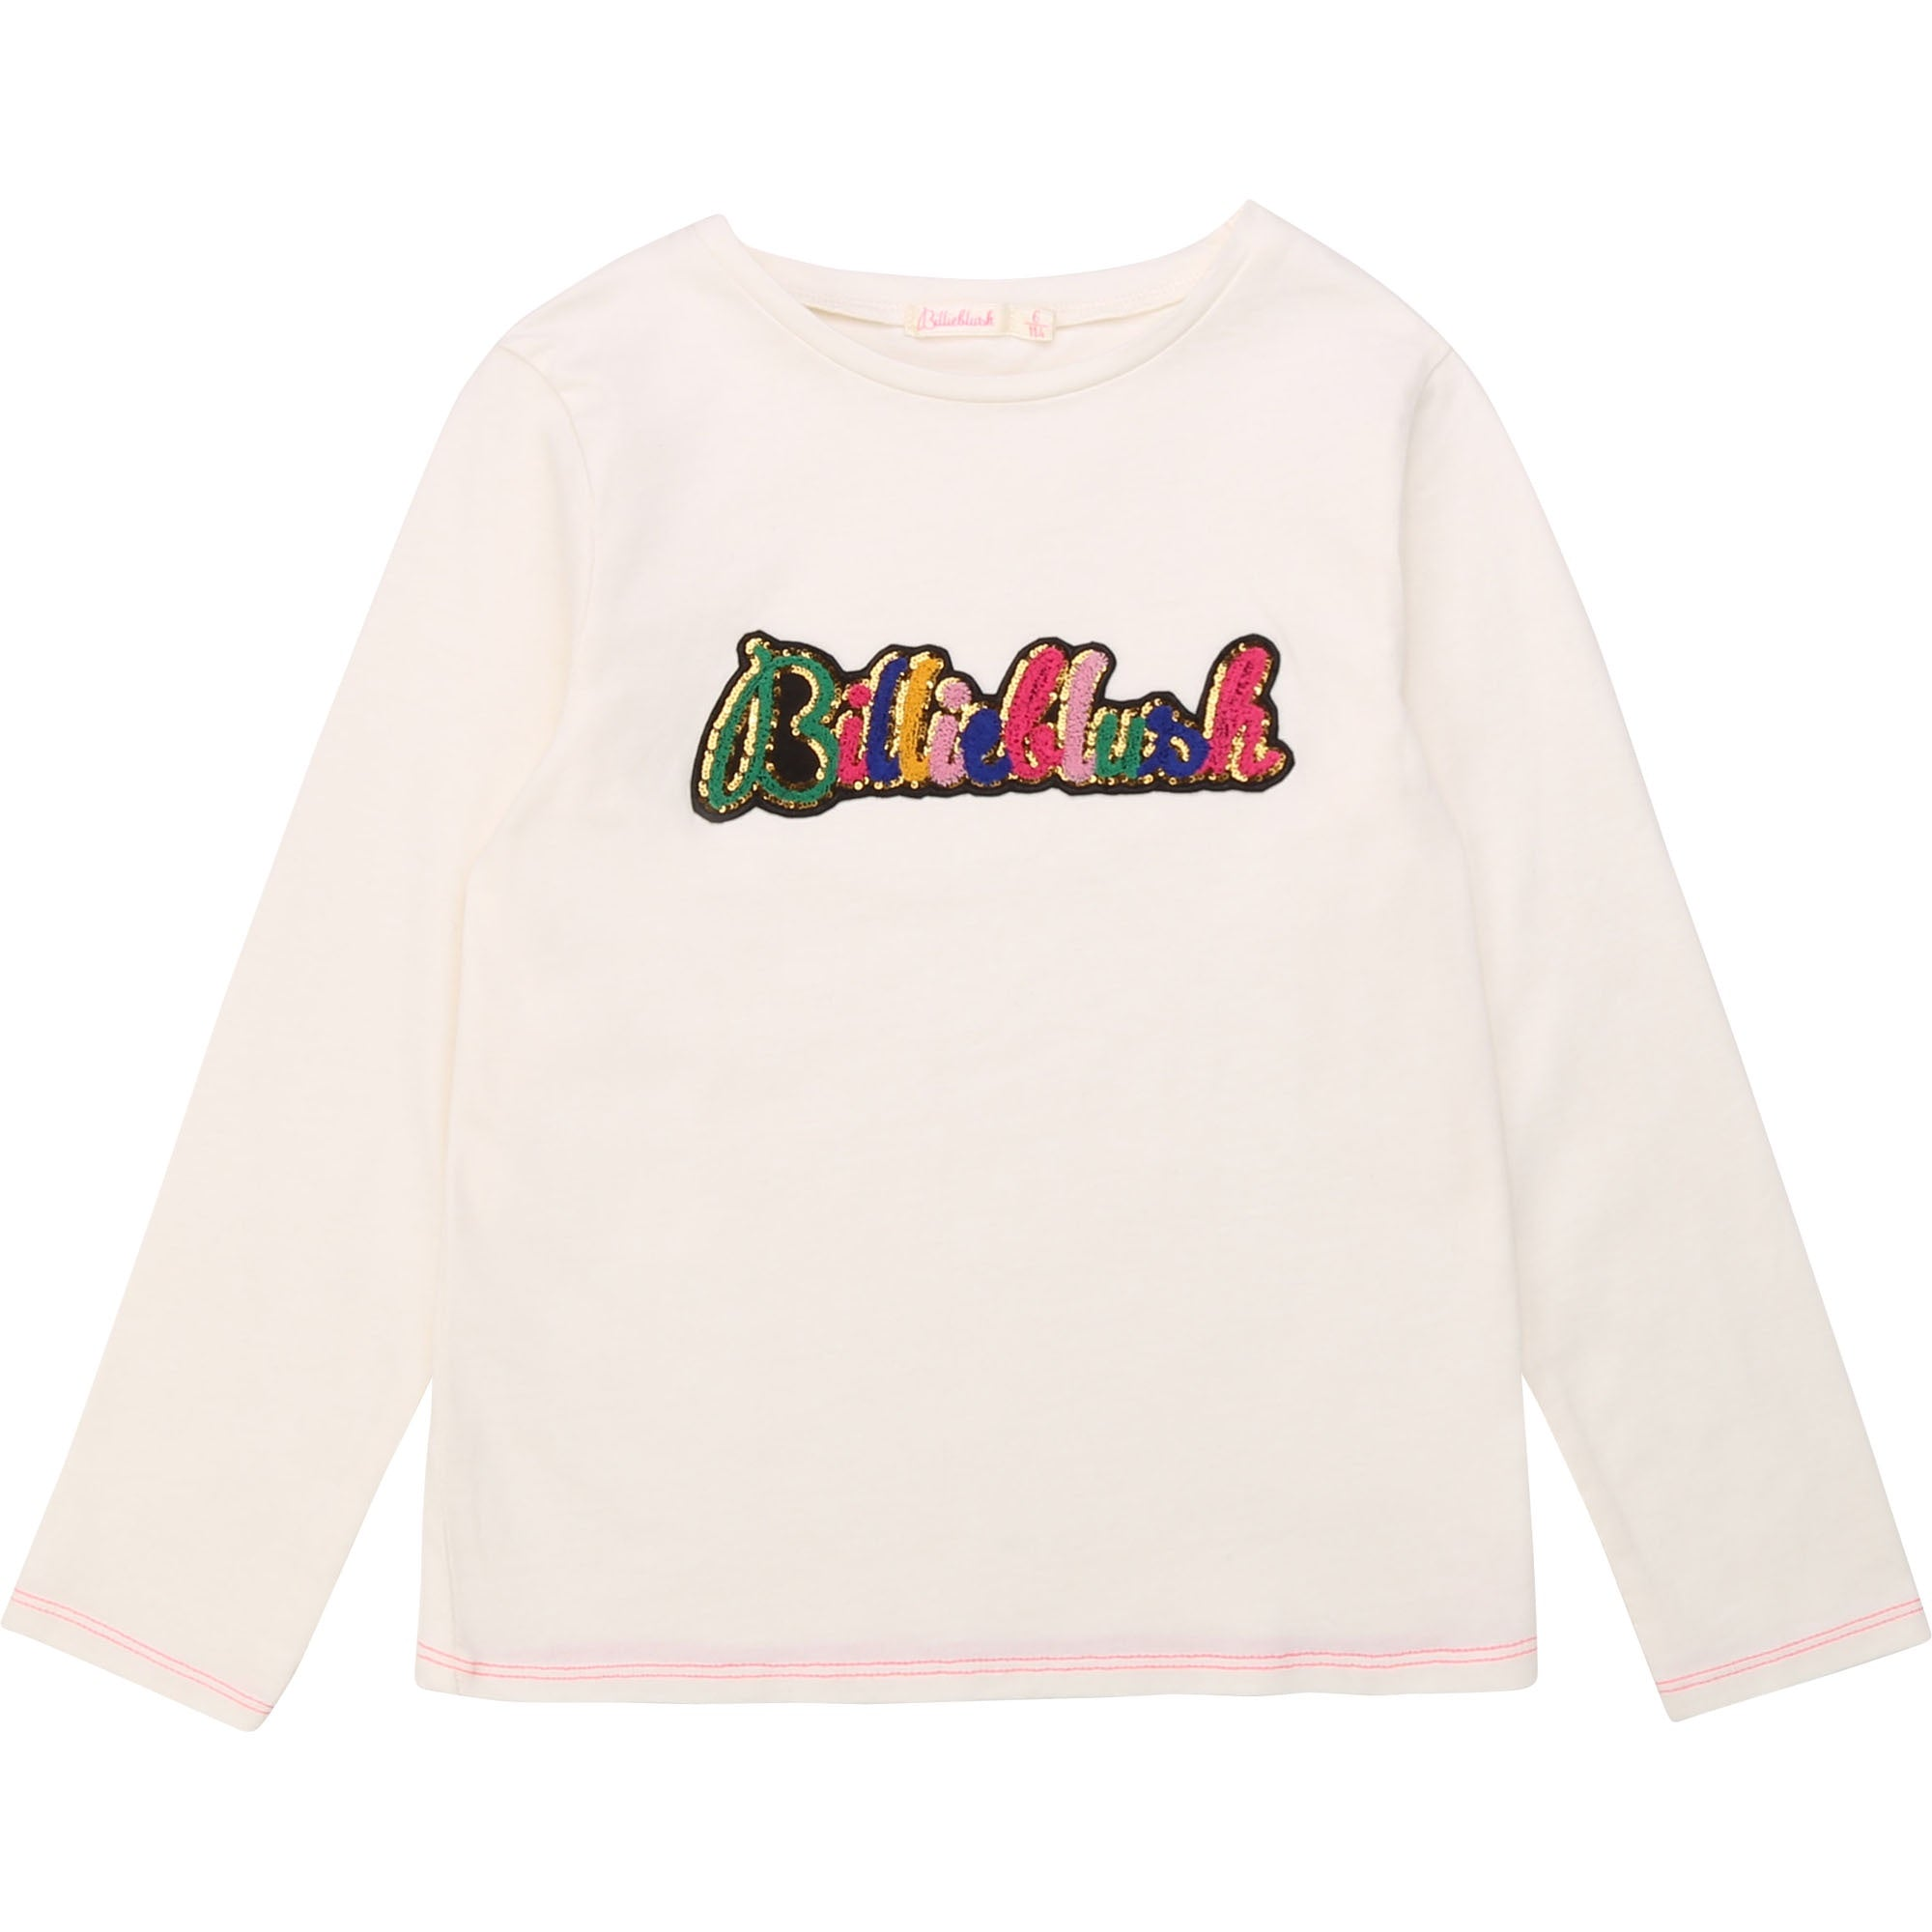 Billieblush Logo White Long Sleeves Tee